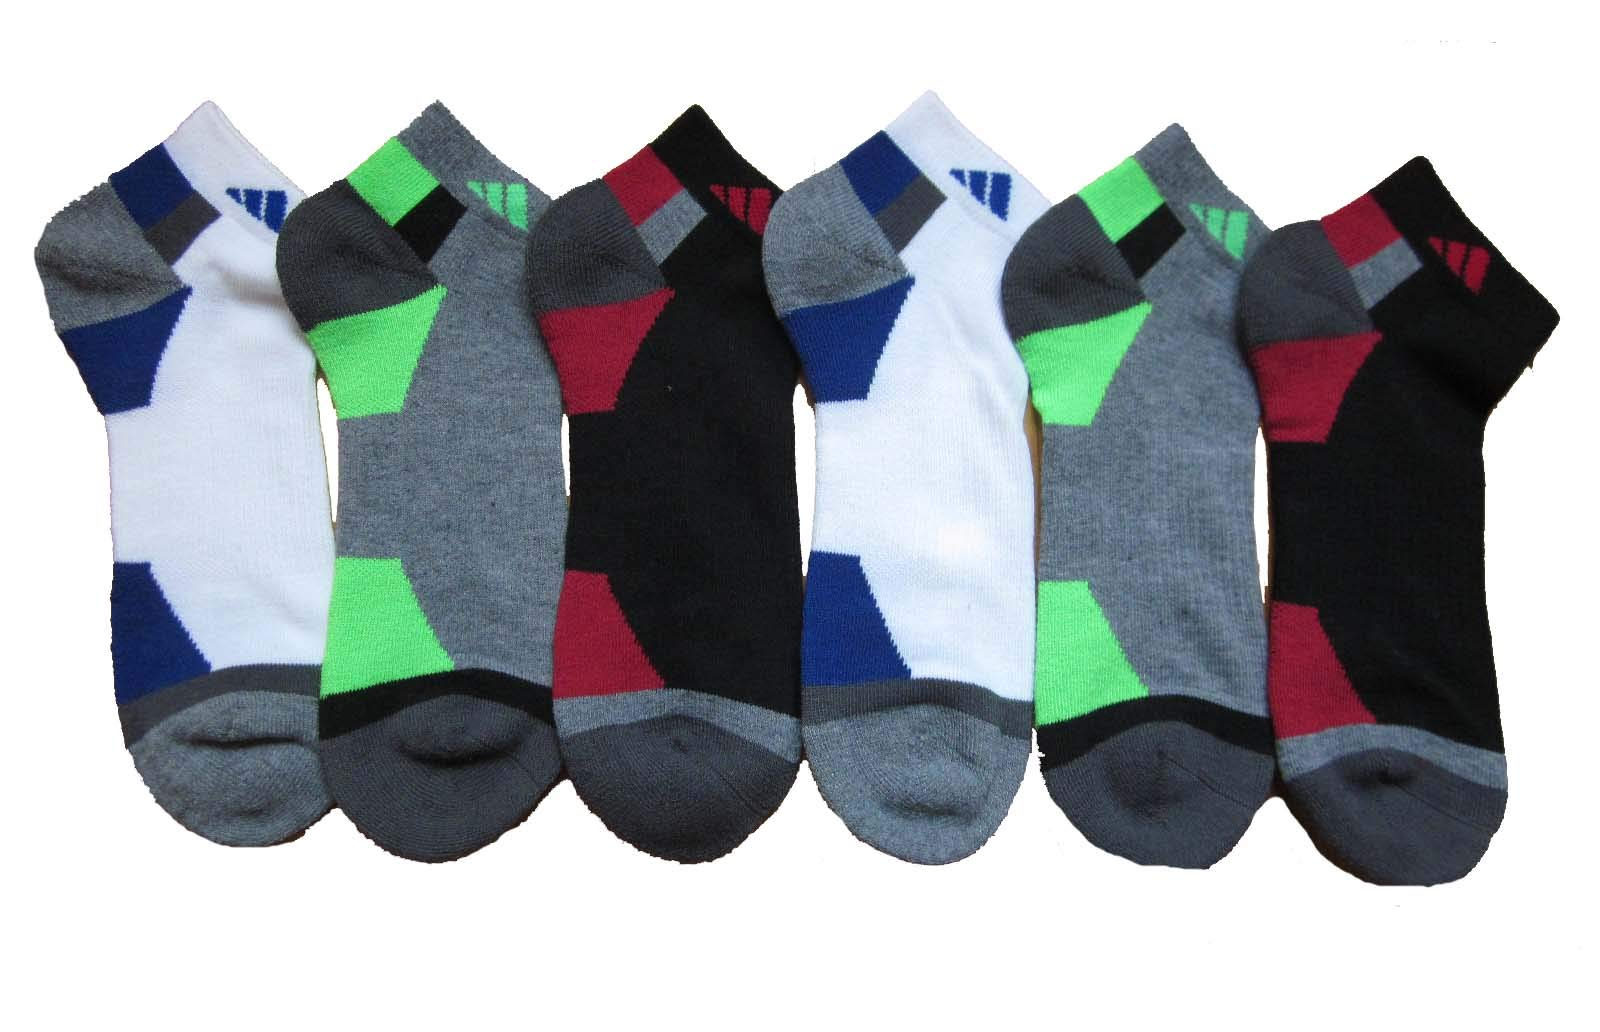 adidas Men's Athletic Low Cut Sock (6-Pack) (Black/Charcoal/Red/Heather/Royal)